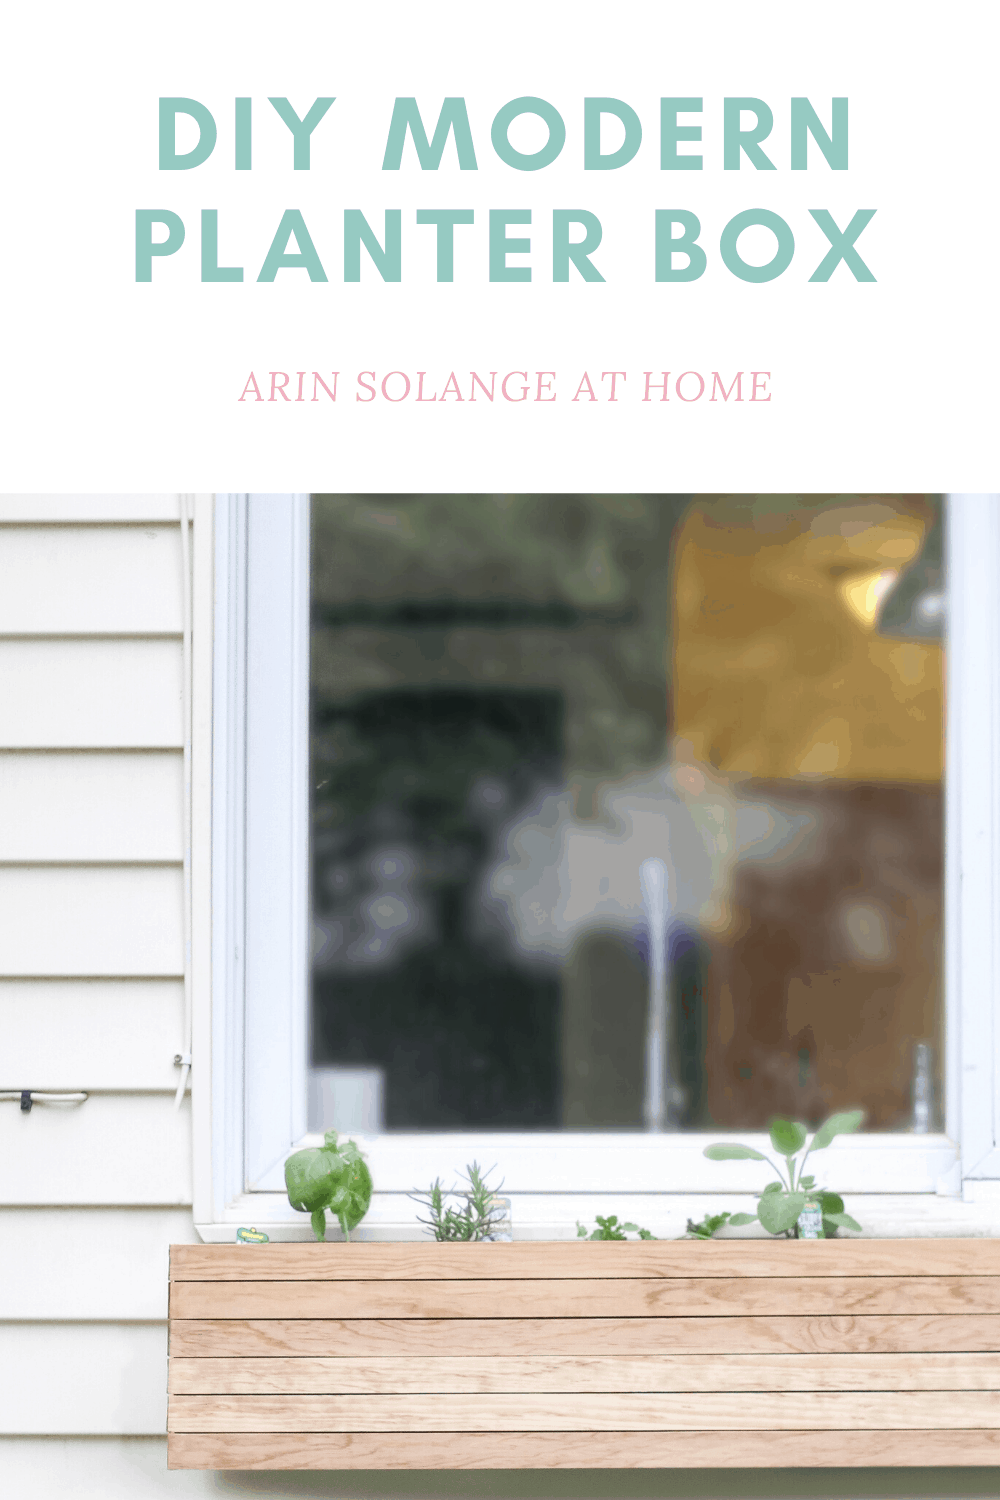 DIY planter box that is easy and modern